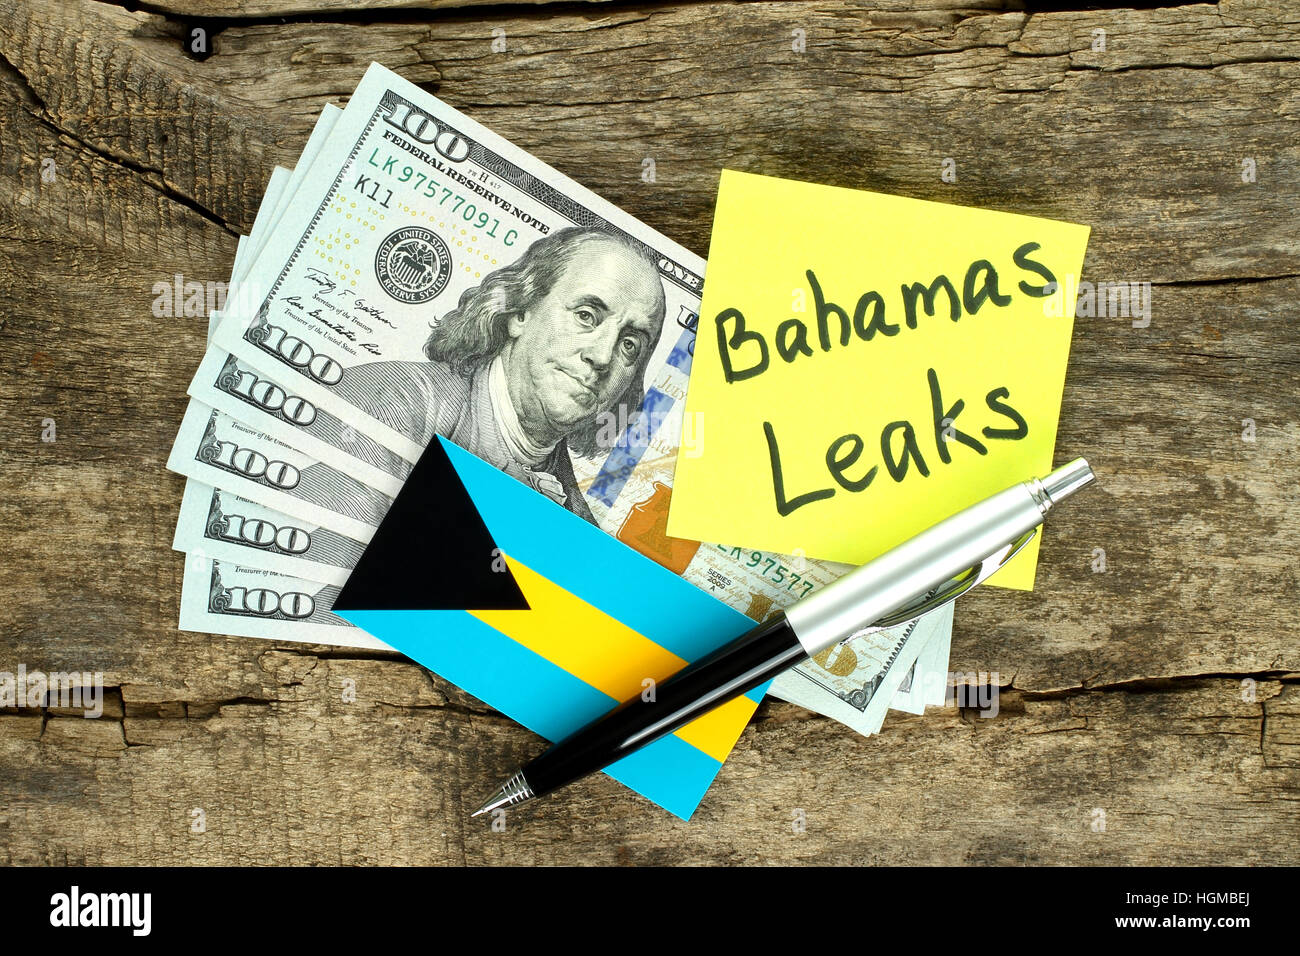 Bahamas Leaks scandal concept on wooden background - Stock Image